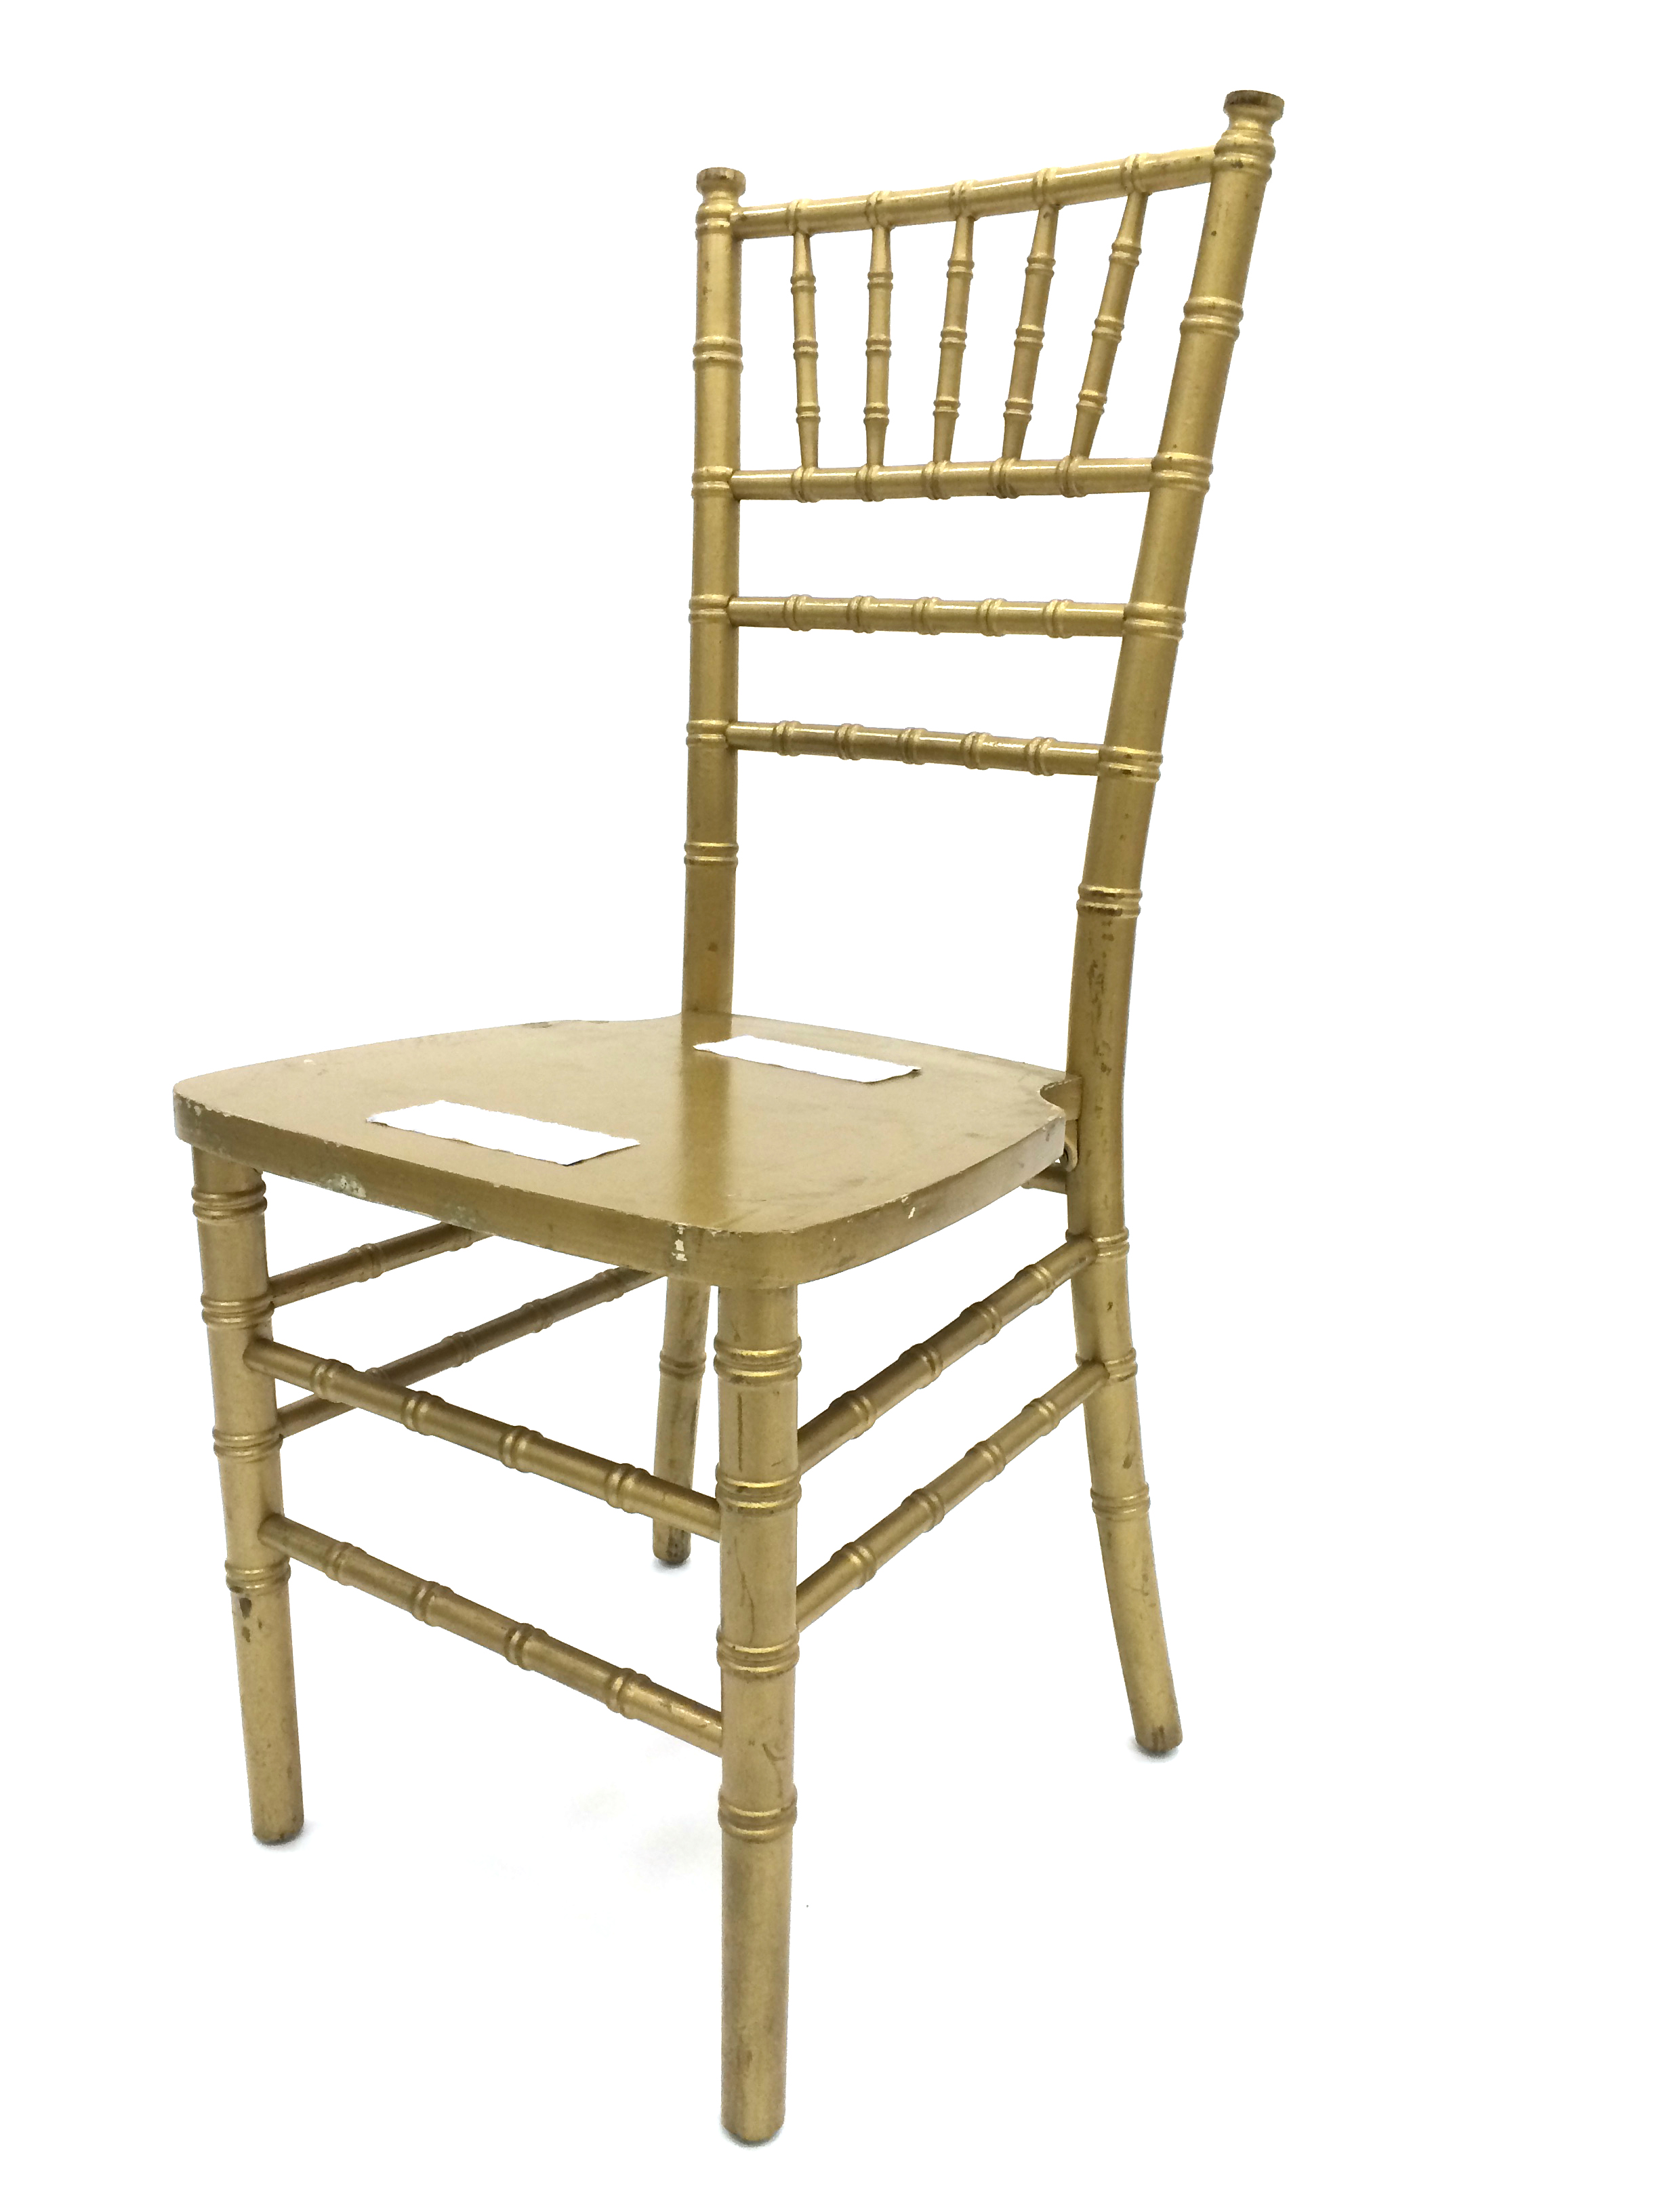 Buy Second Hand Gold Chiavari Chairs - BE Furniture Sales